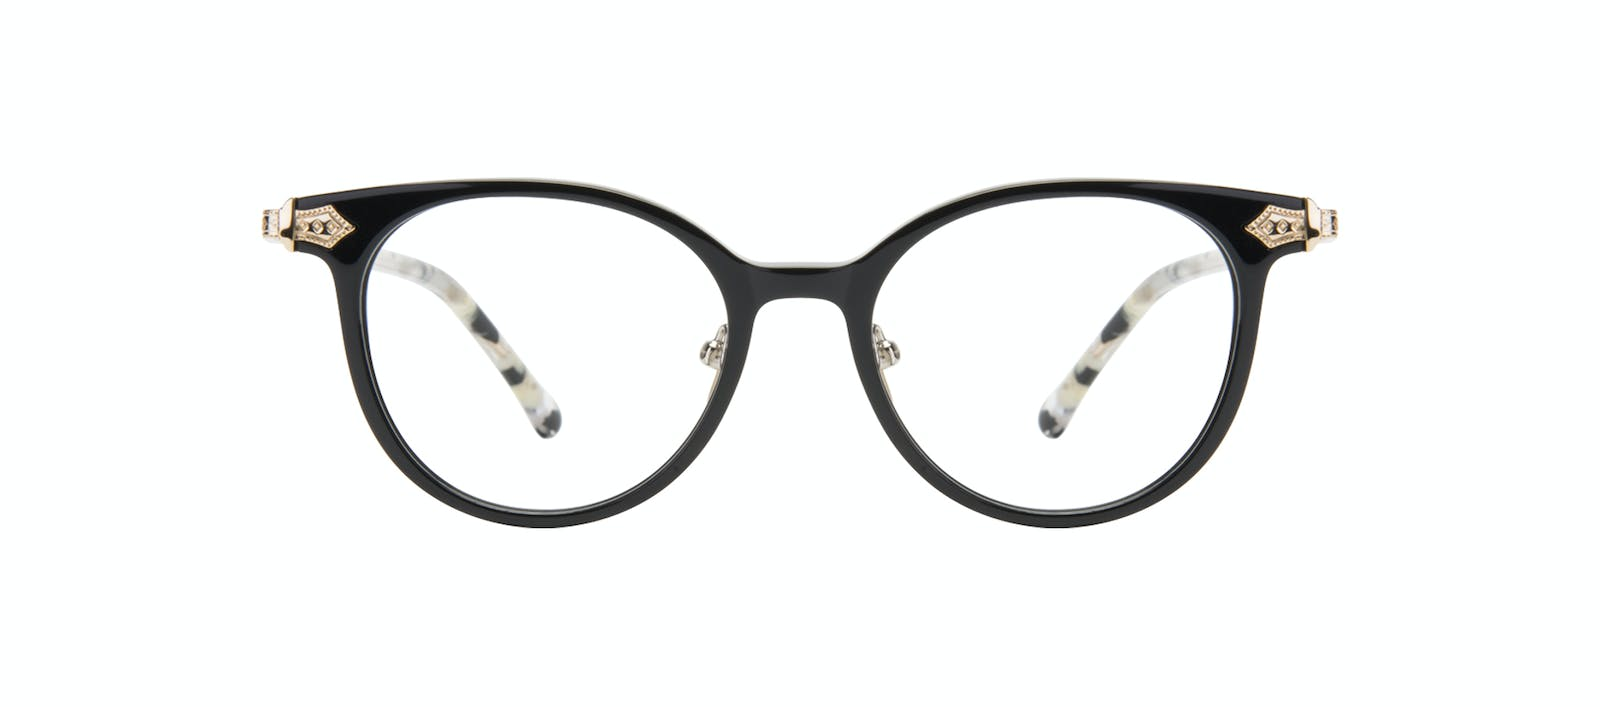 0bcd0d67be2 Affordable Fashion Glasses Round Eyeglasses Women Gem Onyx Marble Front